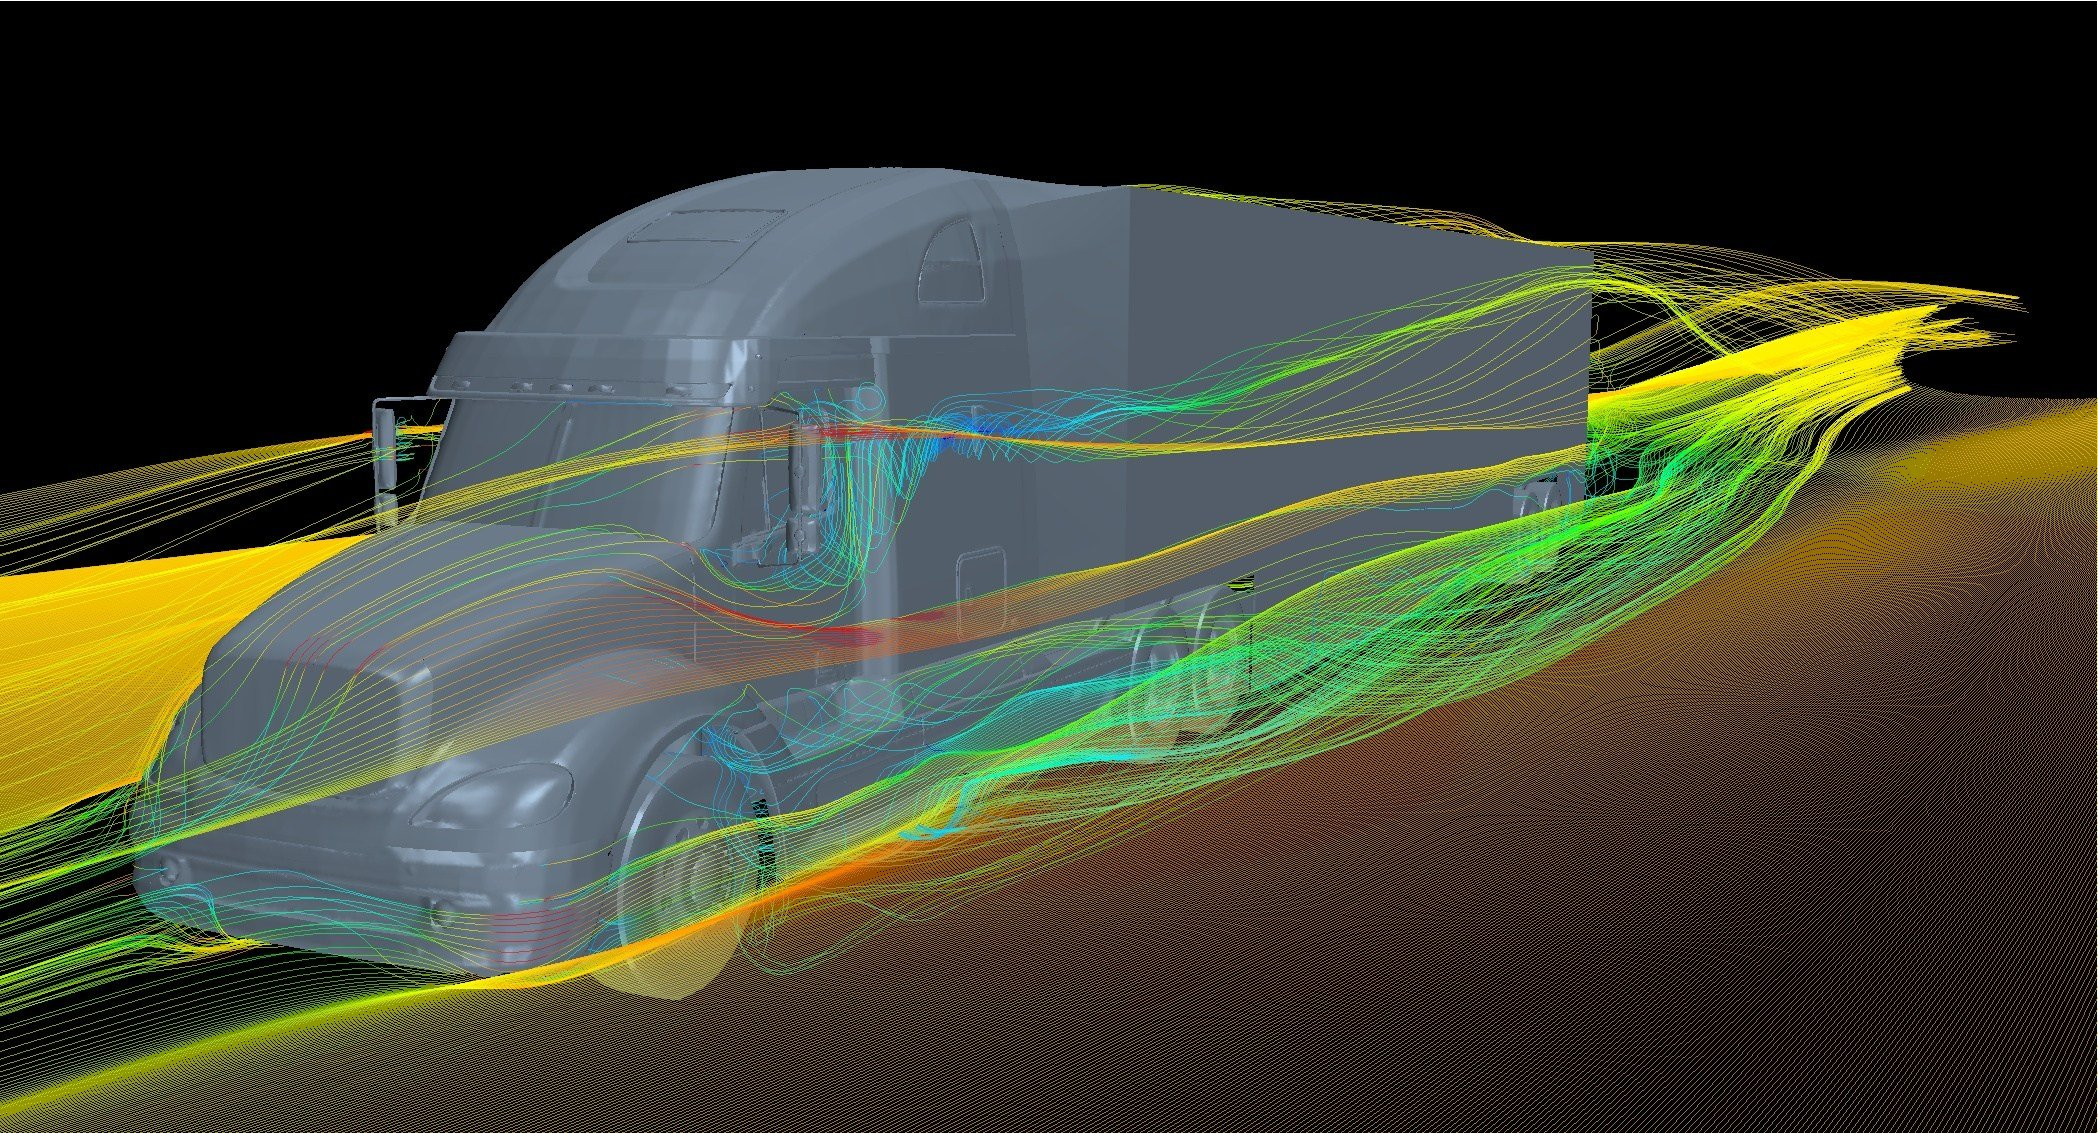 Models show the technology reduces drag by nearly 23 percent, yielding 11 percent fuel savings.